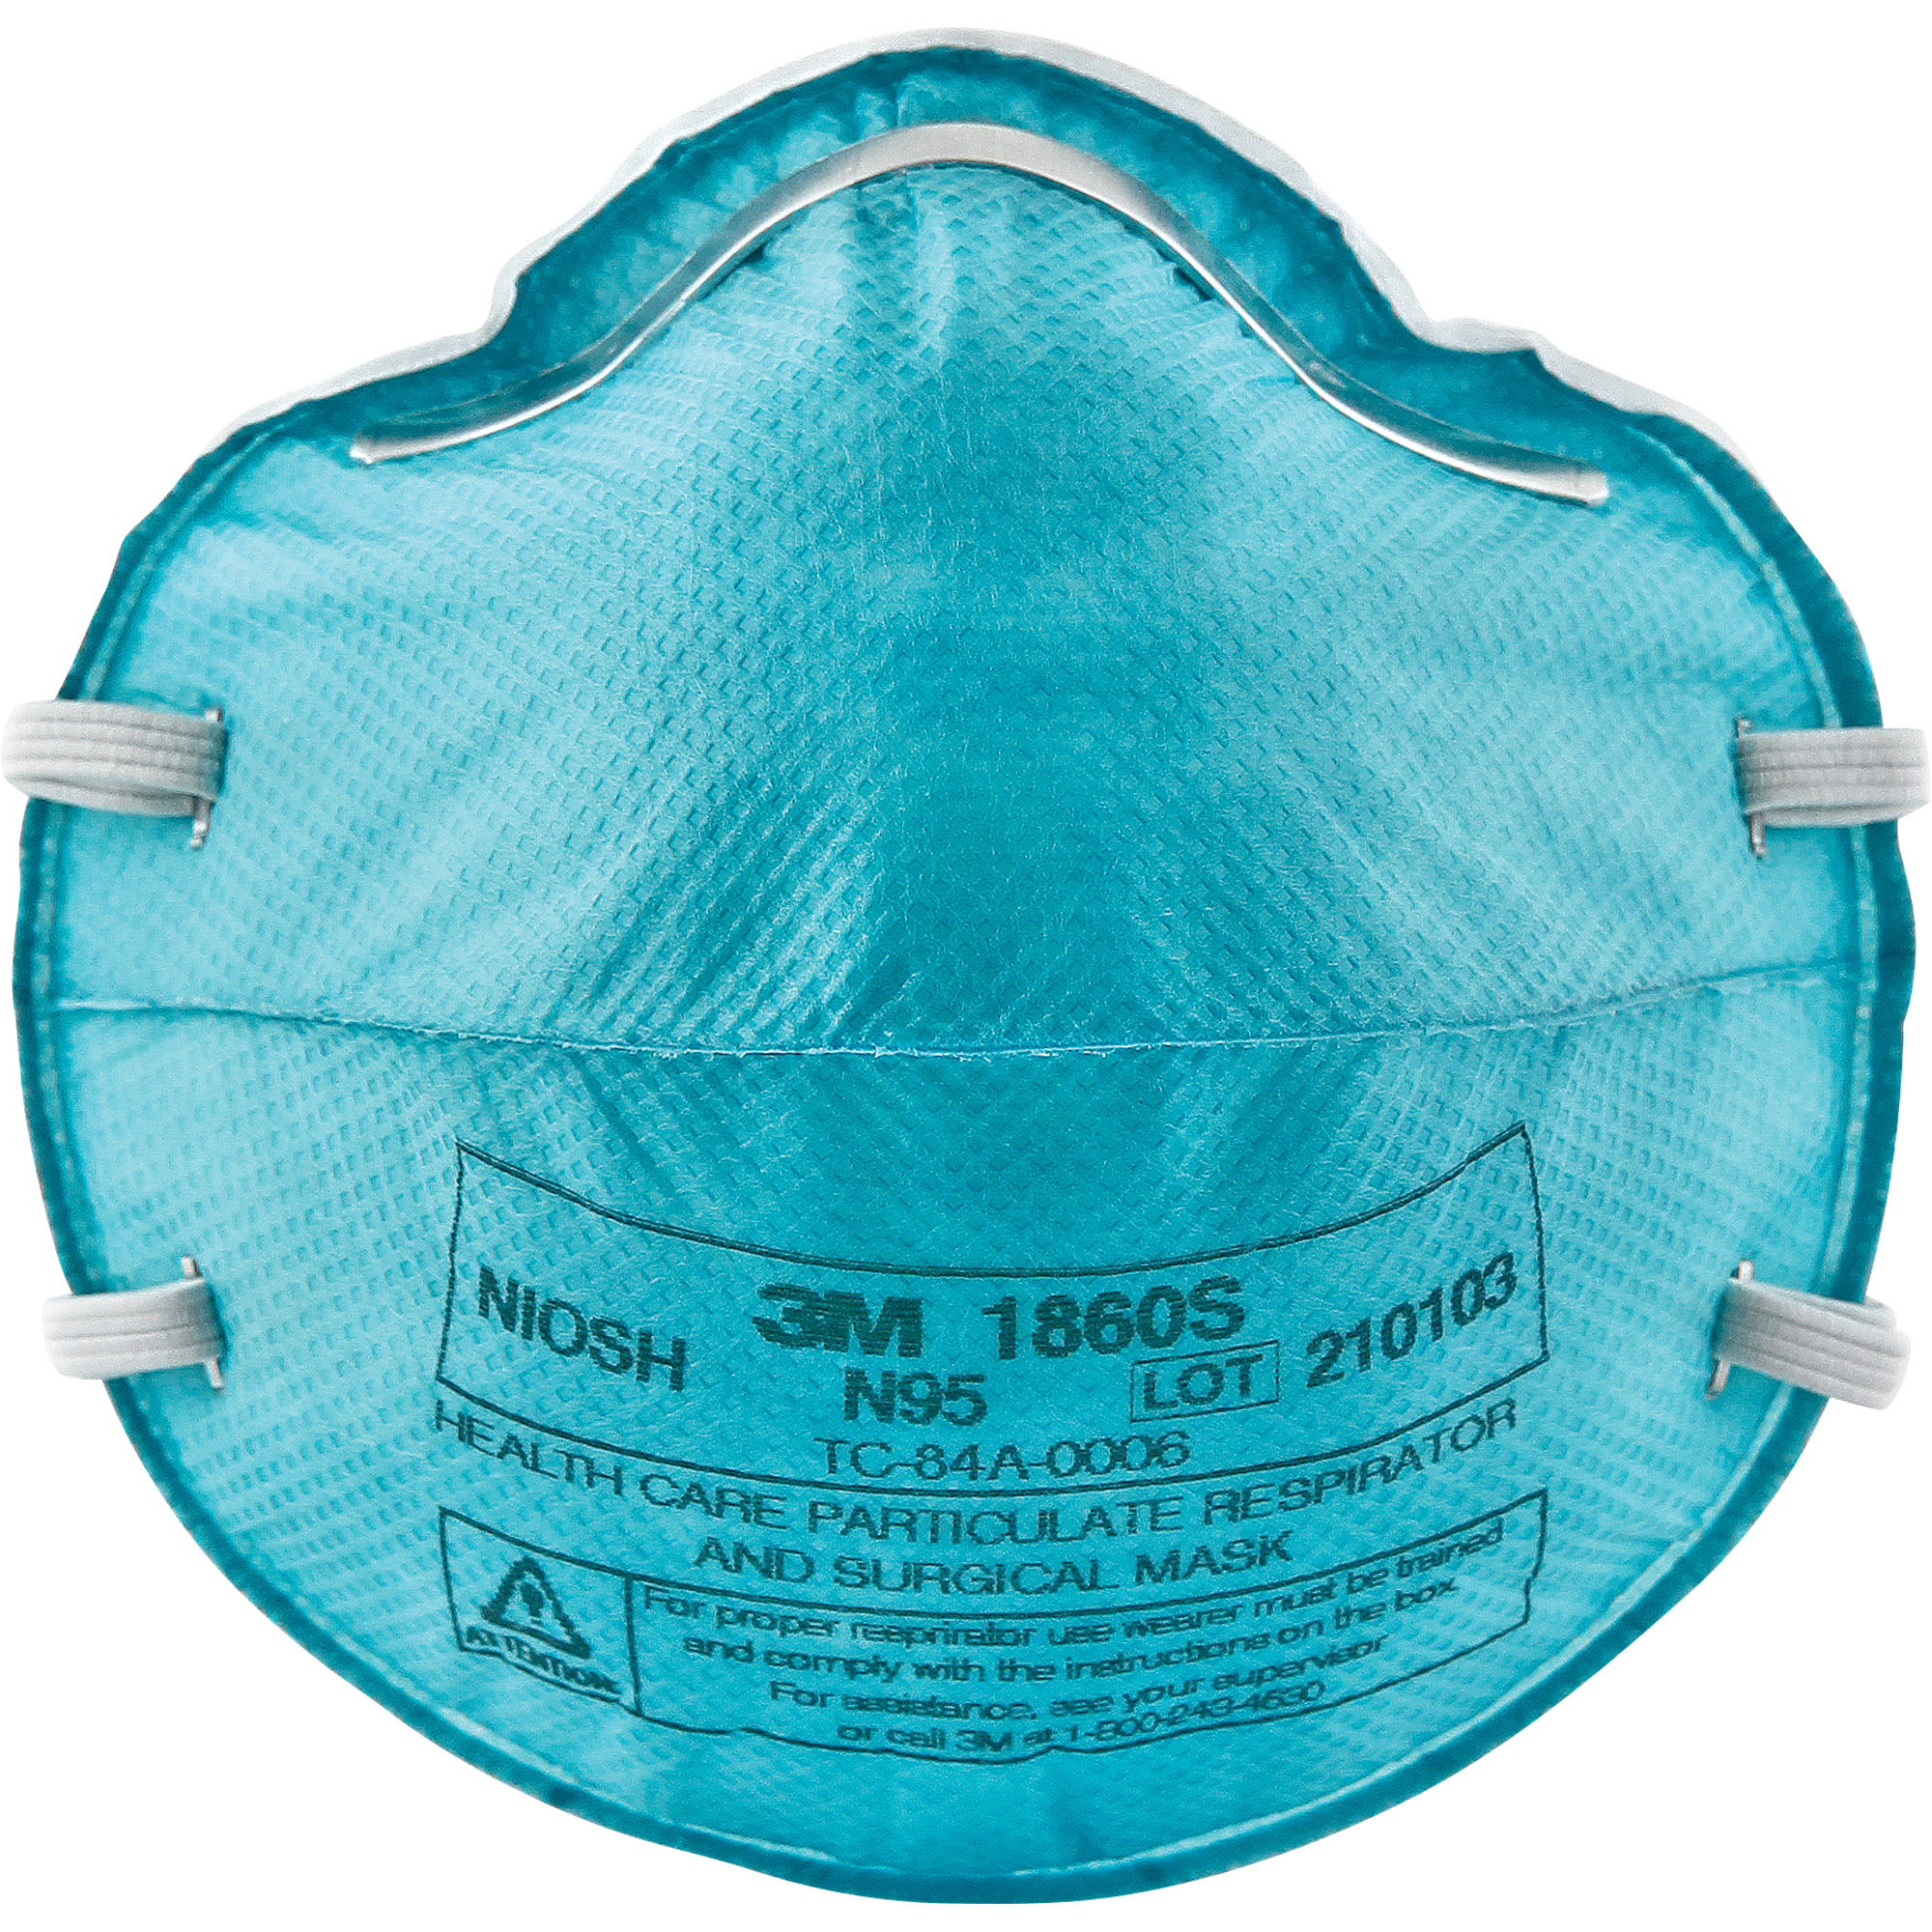 tenaquip surgical mask